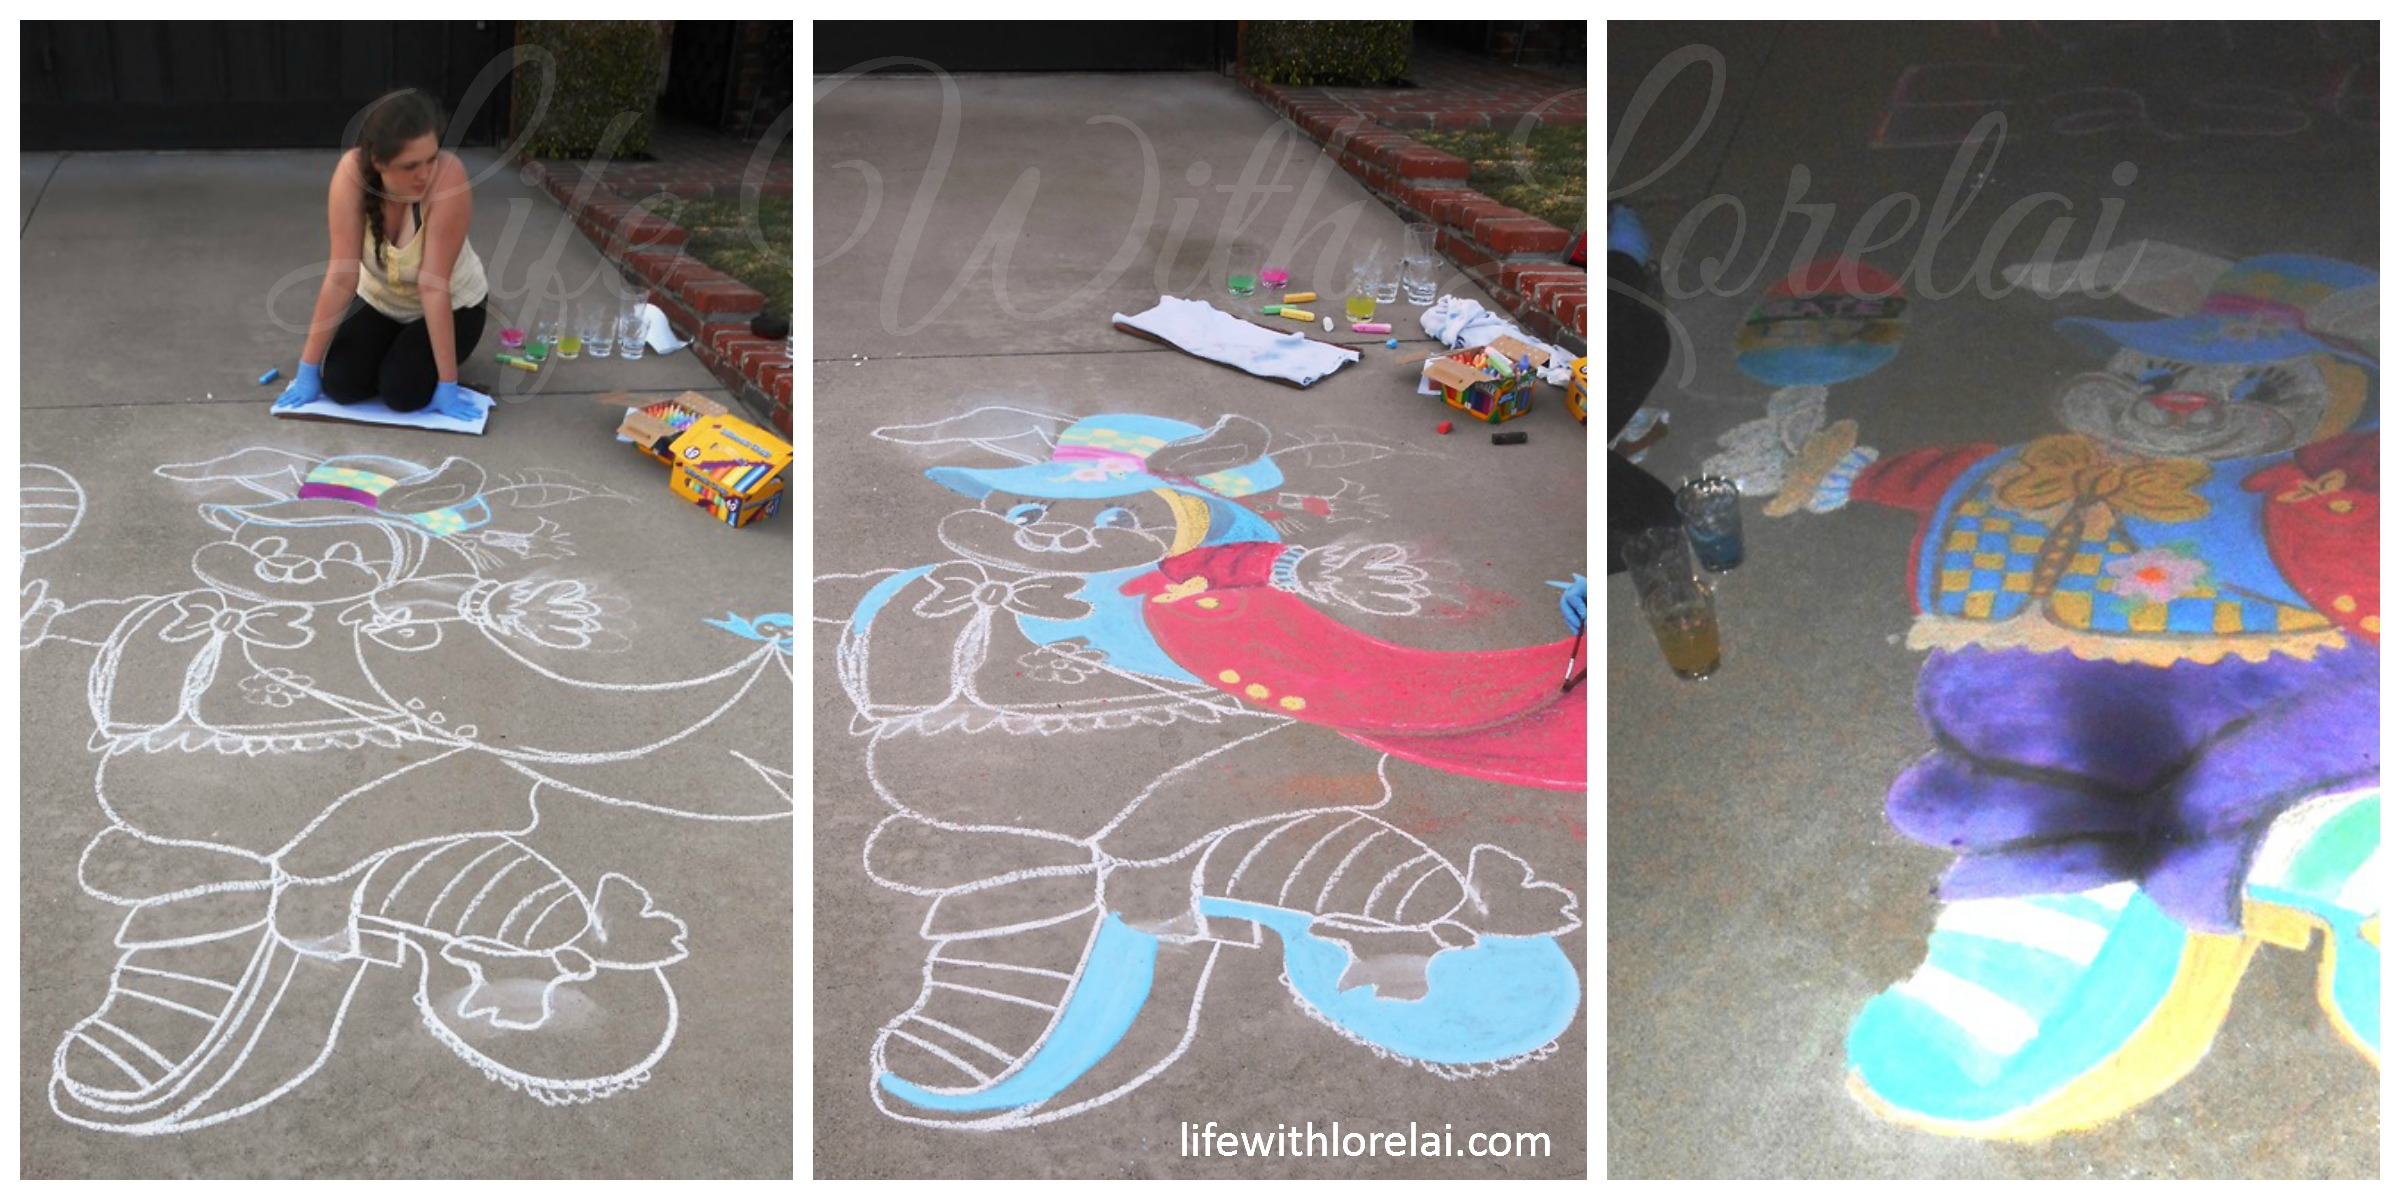 Sidewalk Chalk Art - Drawing and Coloring